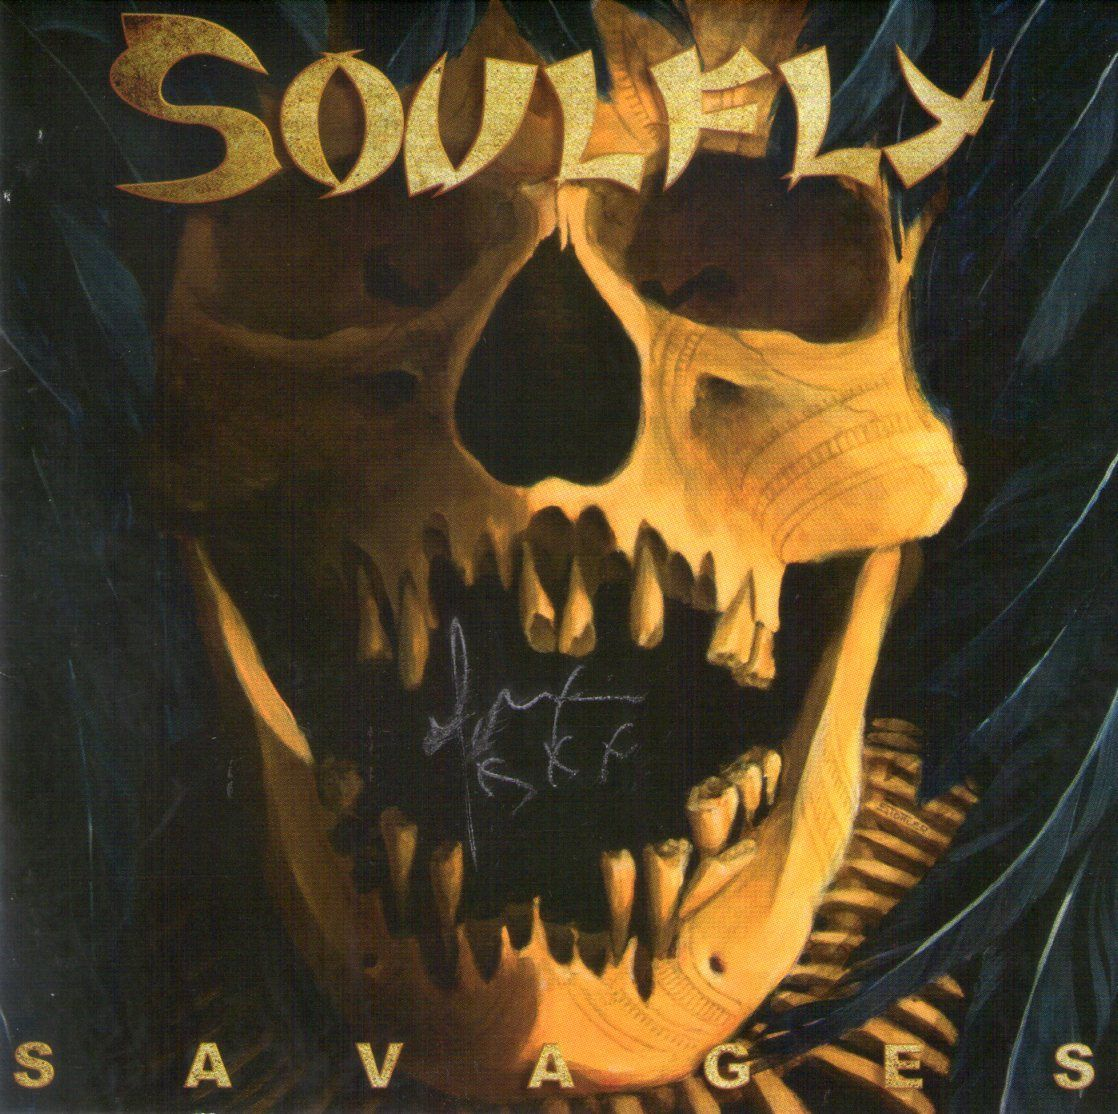 CD – Soulfly – Savages – Autografado